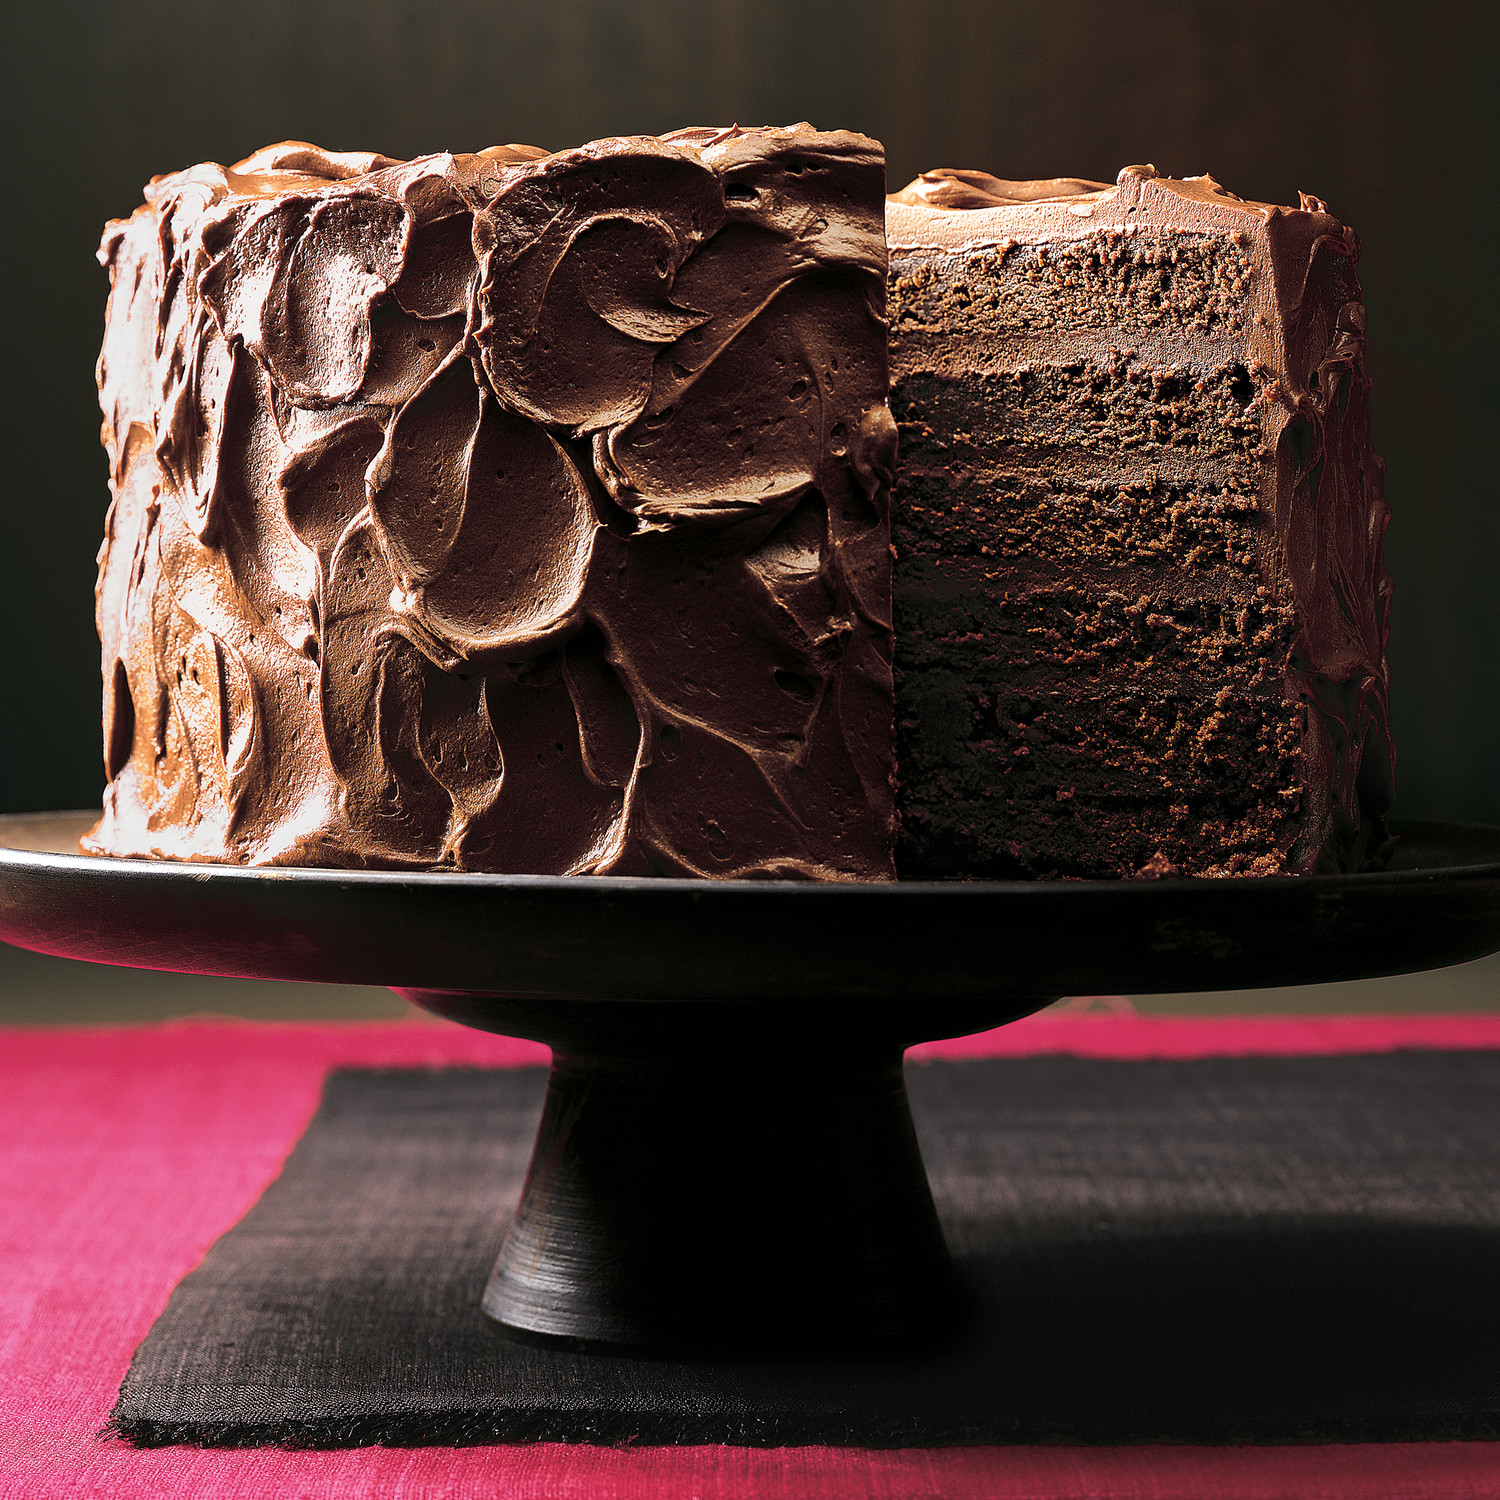 Six Layer Chocolate Cake